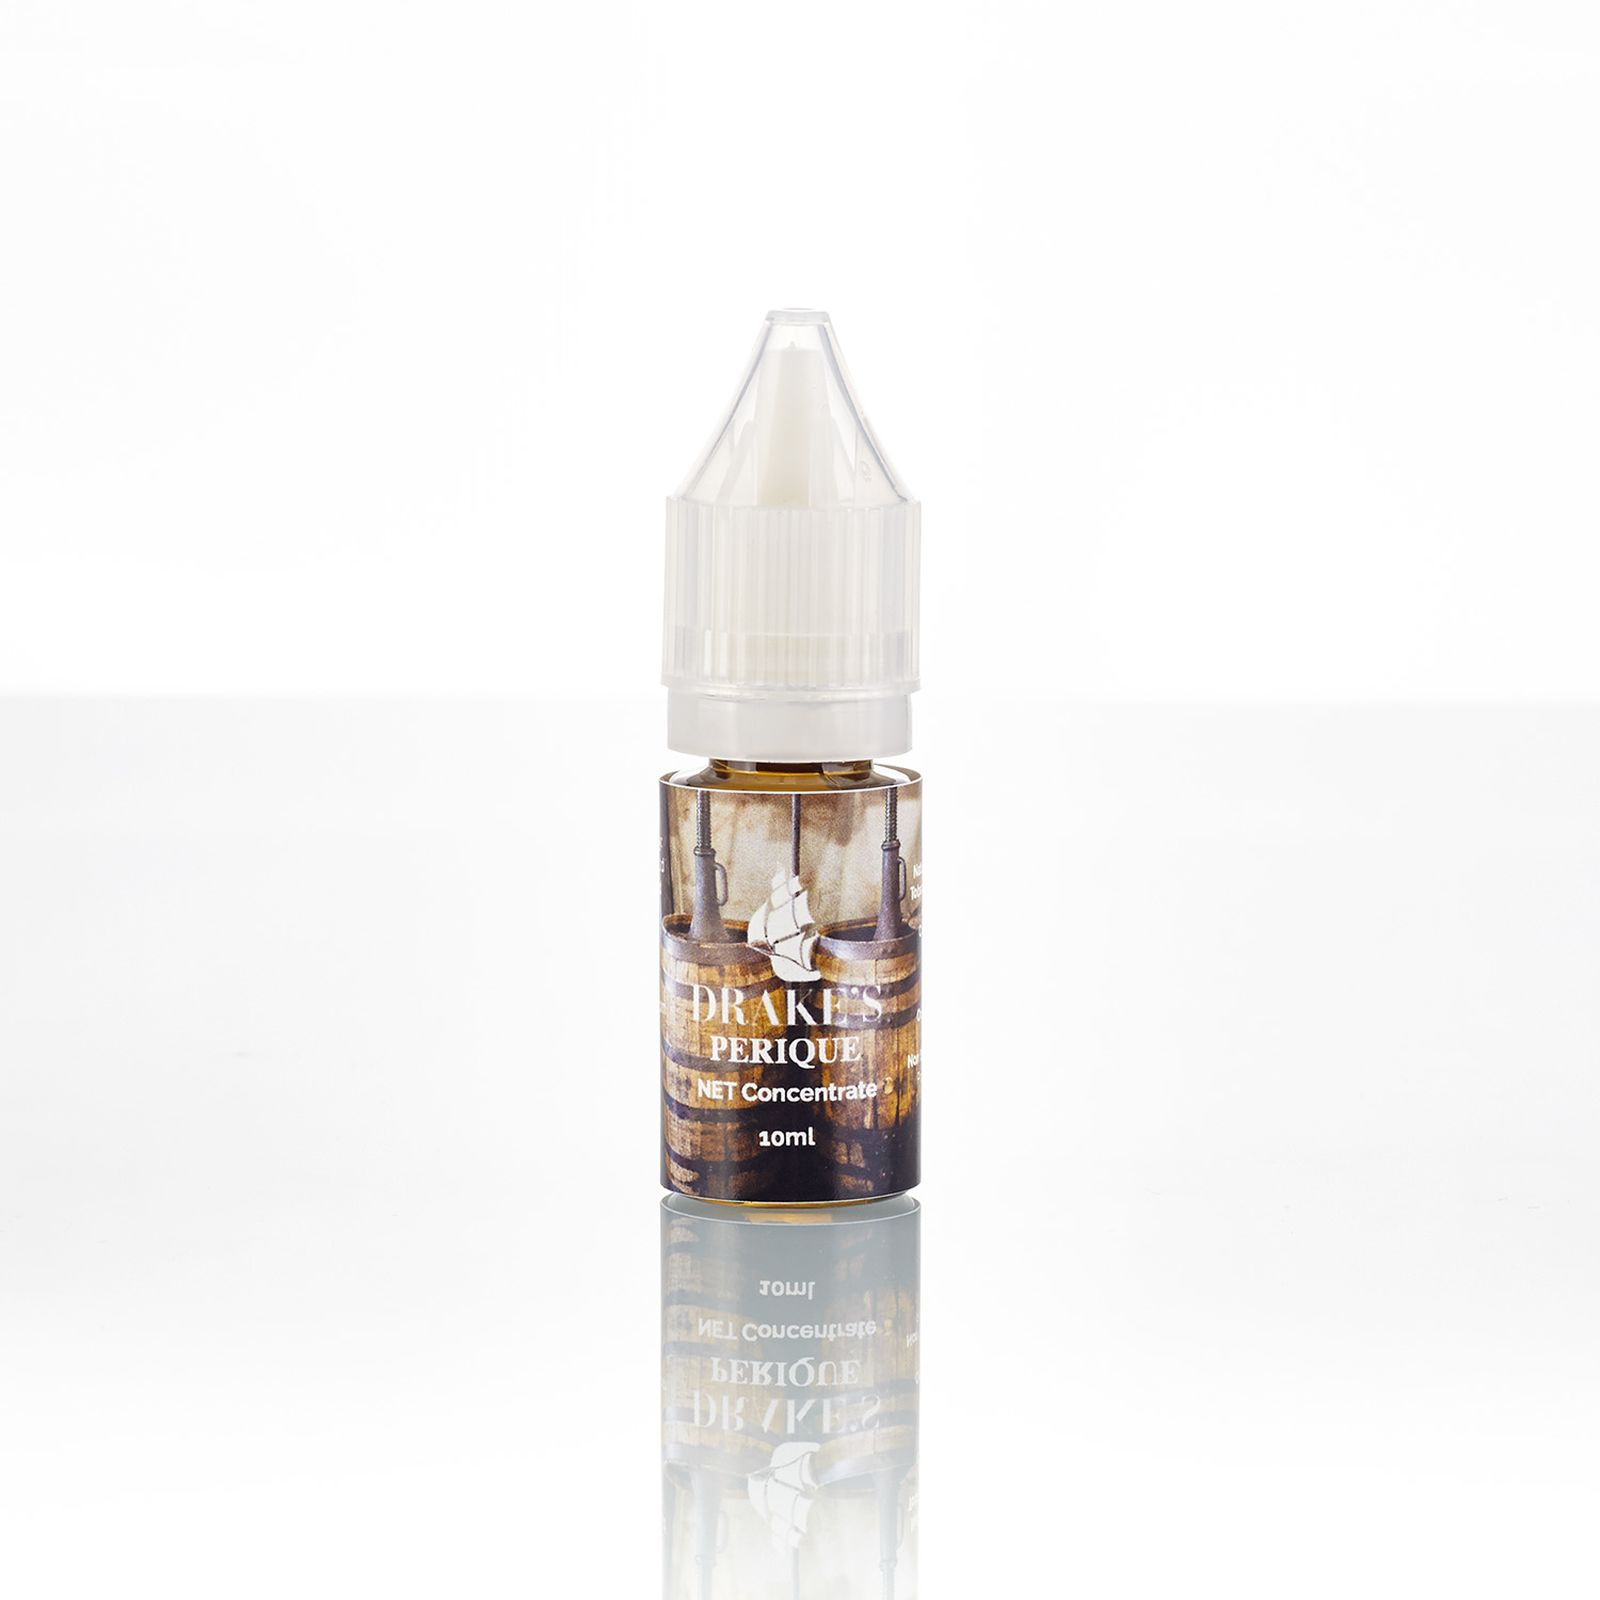 Saint James Perique Tobacco Flavour Concentrate by Drakes - Naturally Extracted Tobacco Concentrate